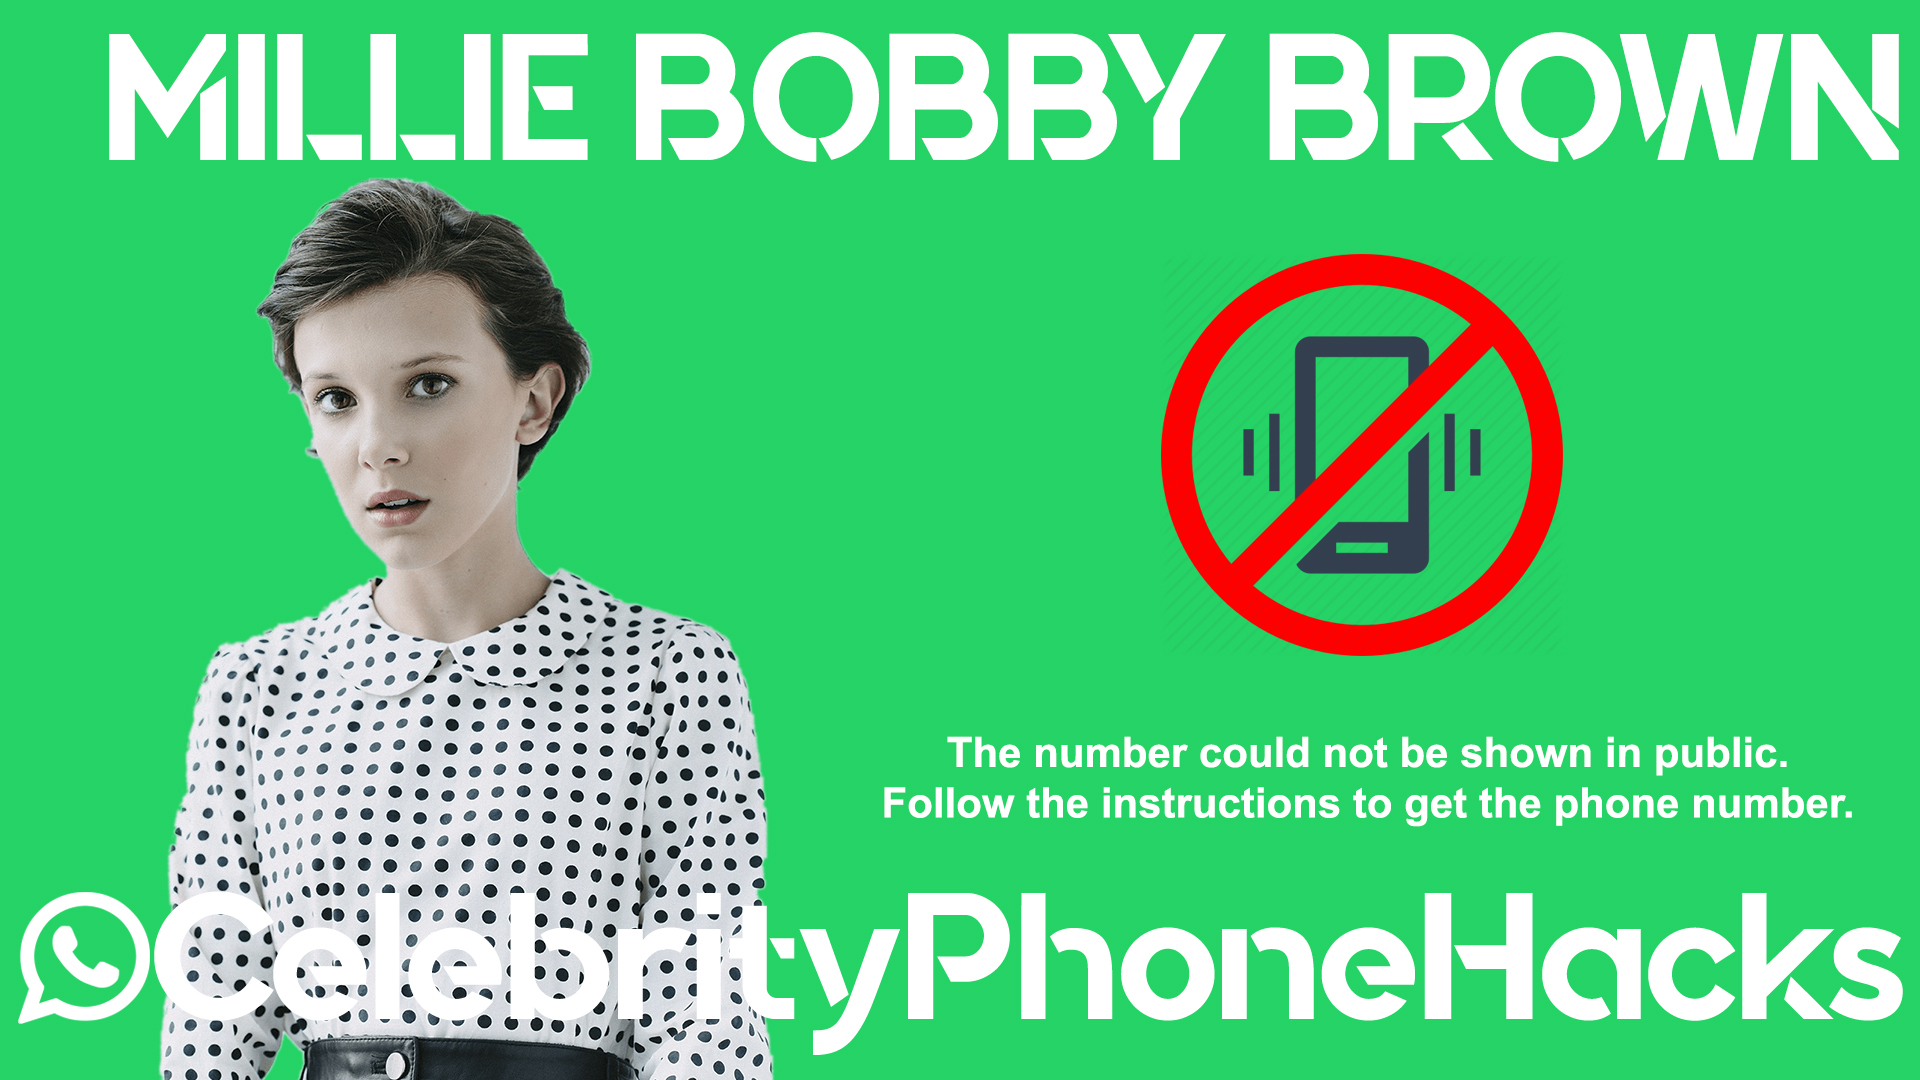 Millie Bobby Brown real phone number 2019 whatsapp hacked leaked